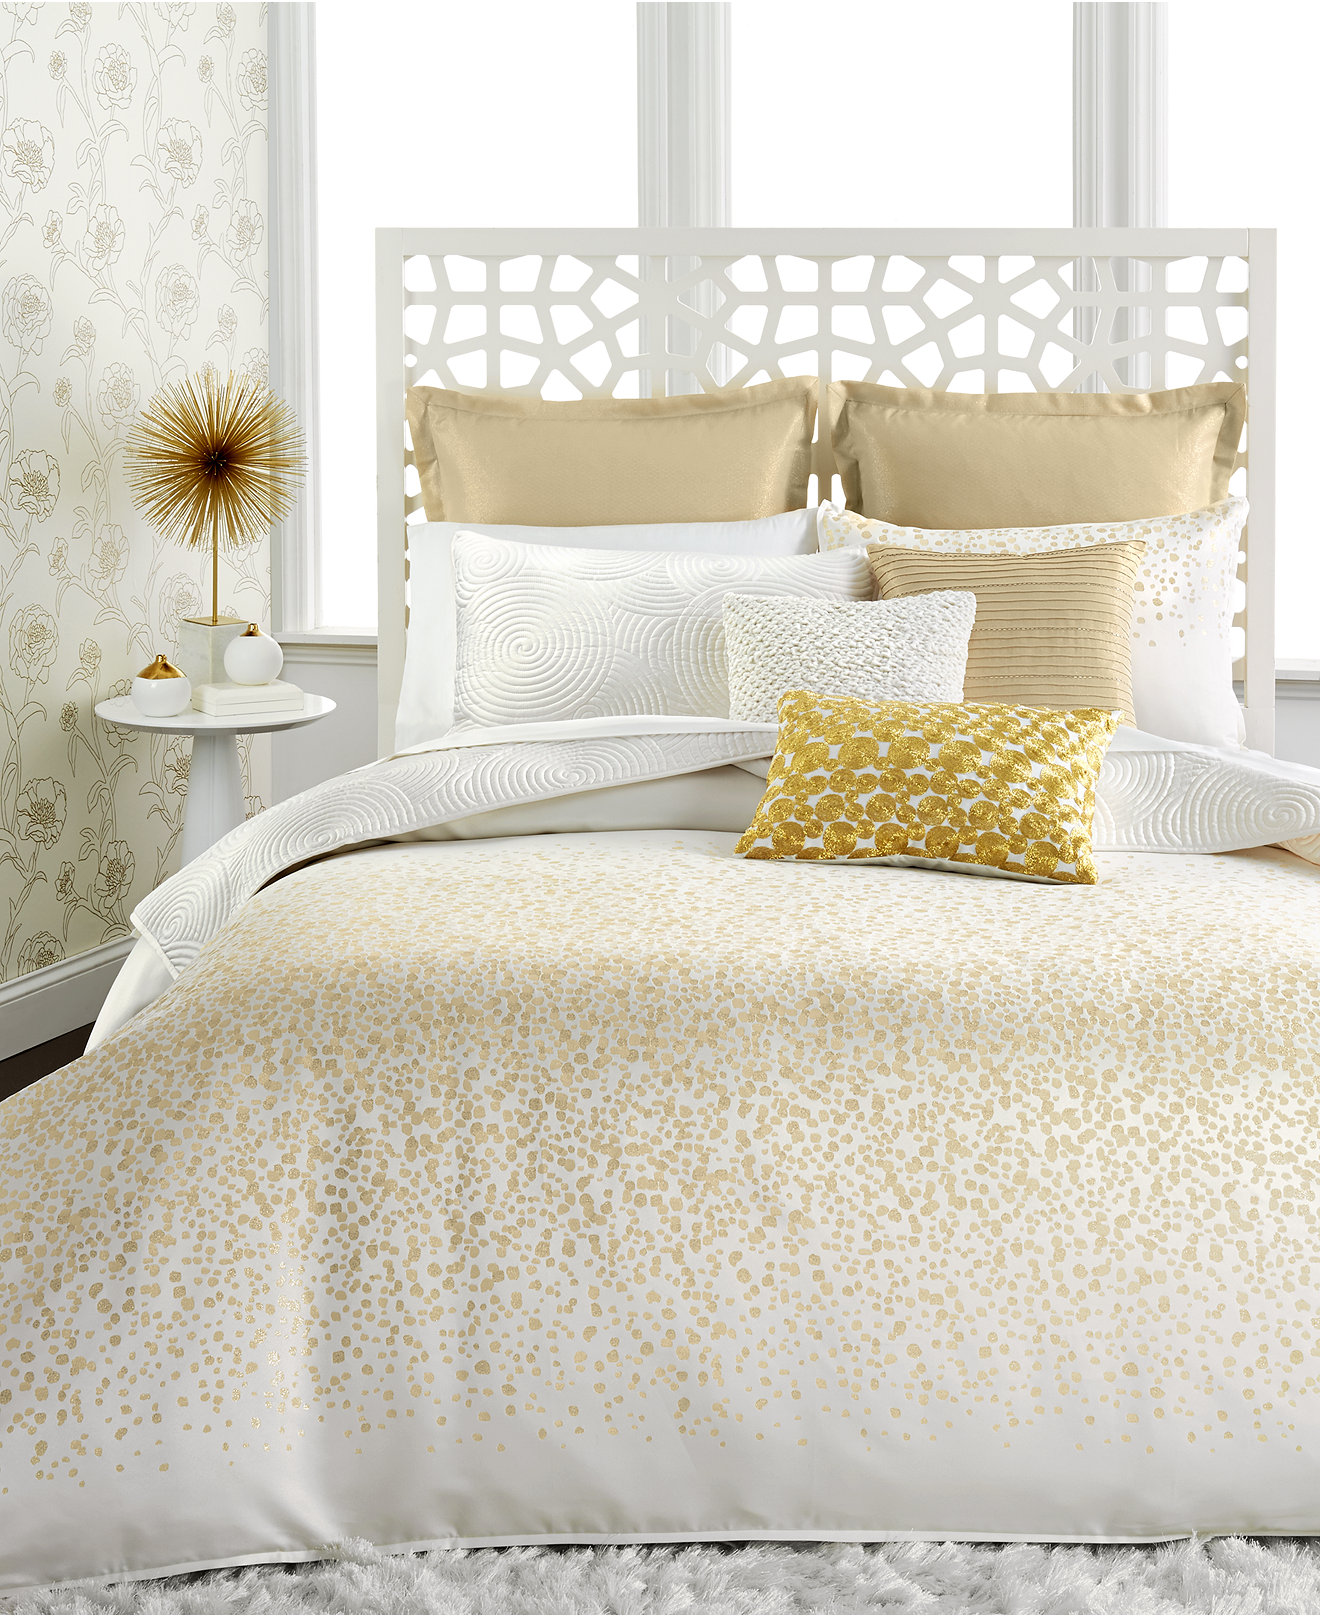 White Queen Duvet Cover | Queen Duvet Covers | White Duvet Cover Queen